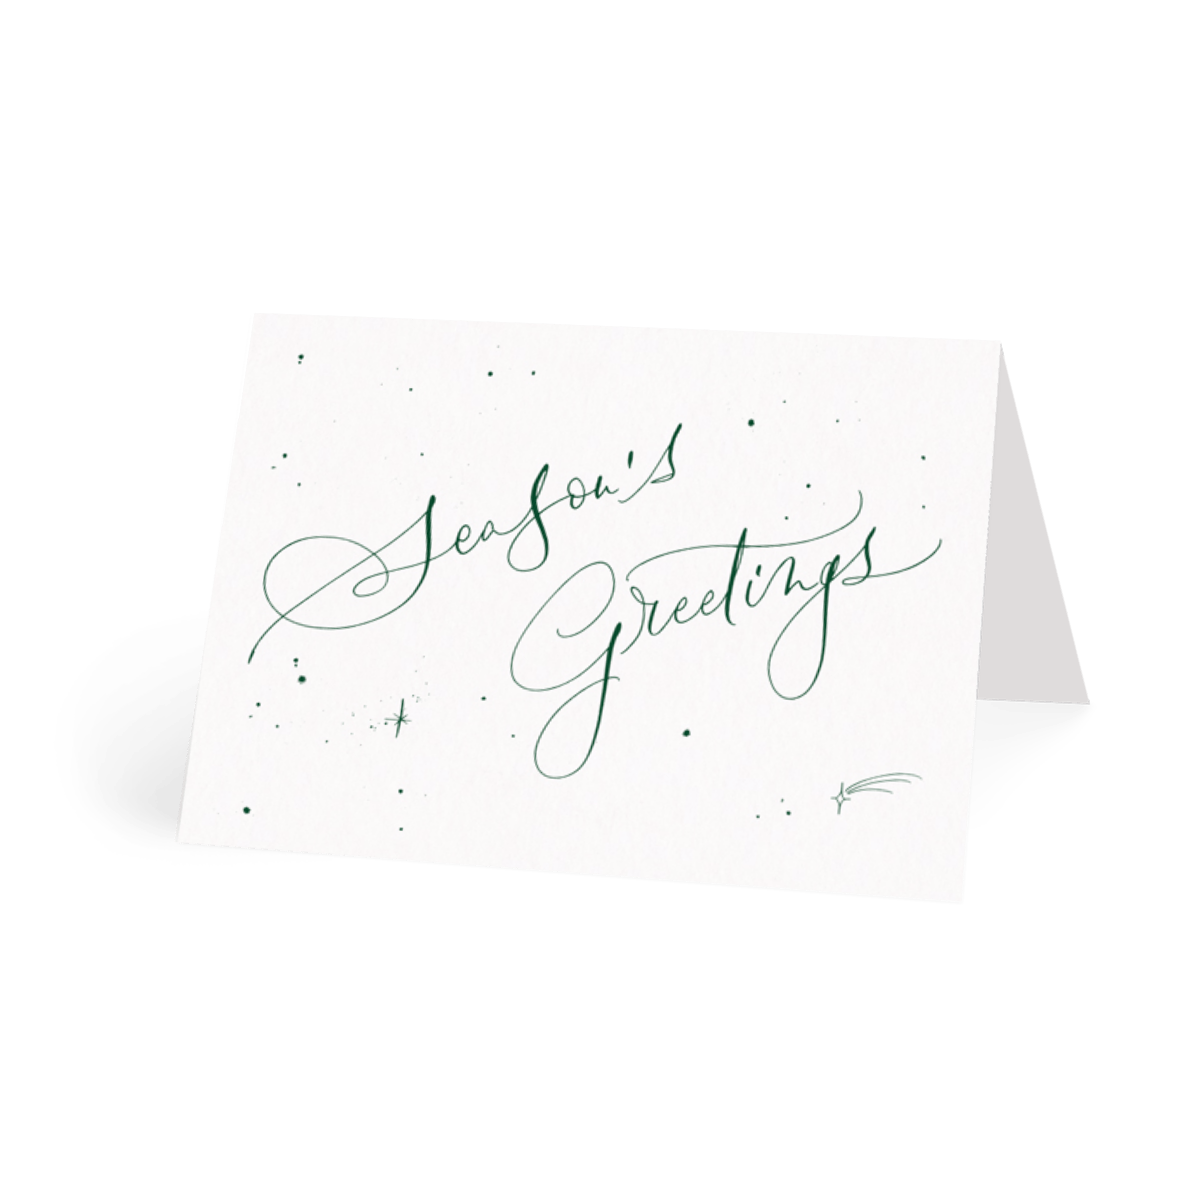 Https%3a%2f%2fwww.papier.com%2fproduct image%2f26969%2f14%2fseason s greetings starry green 6735 front 1502460559.png?ixlib=rb 1.1